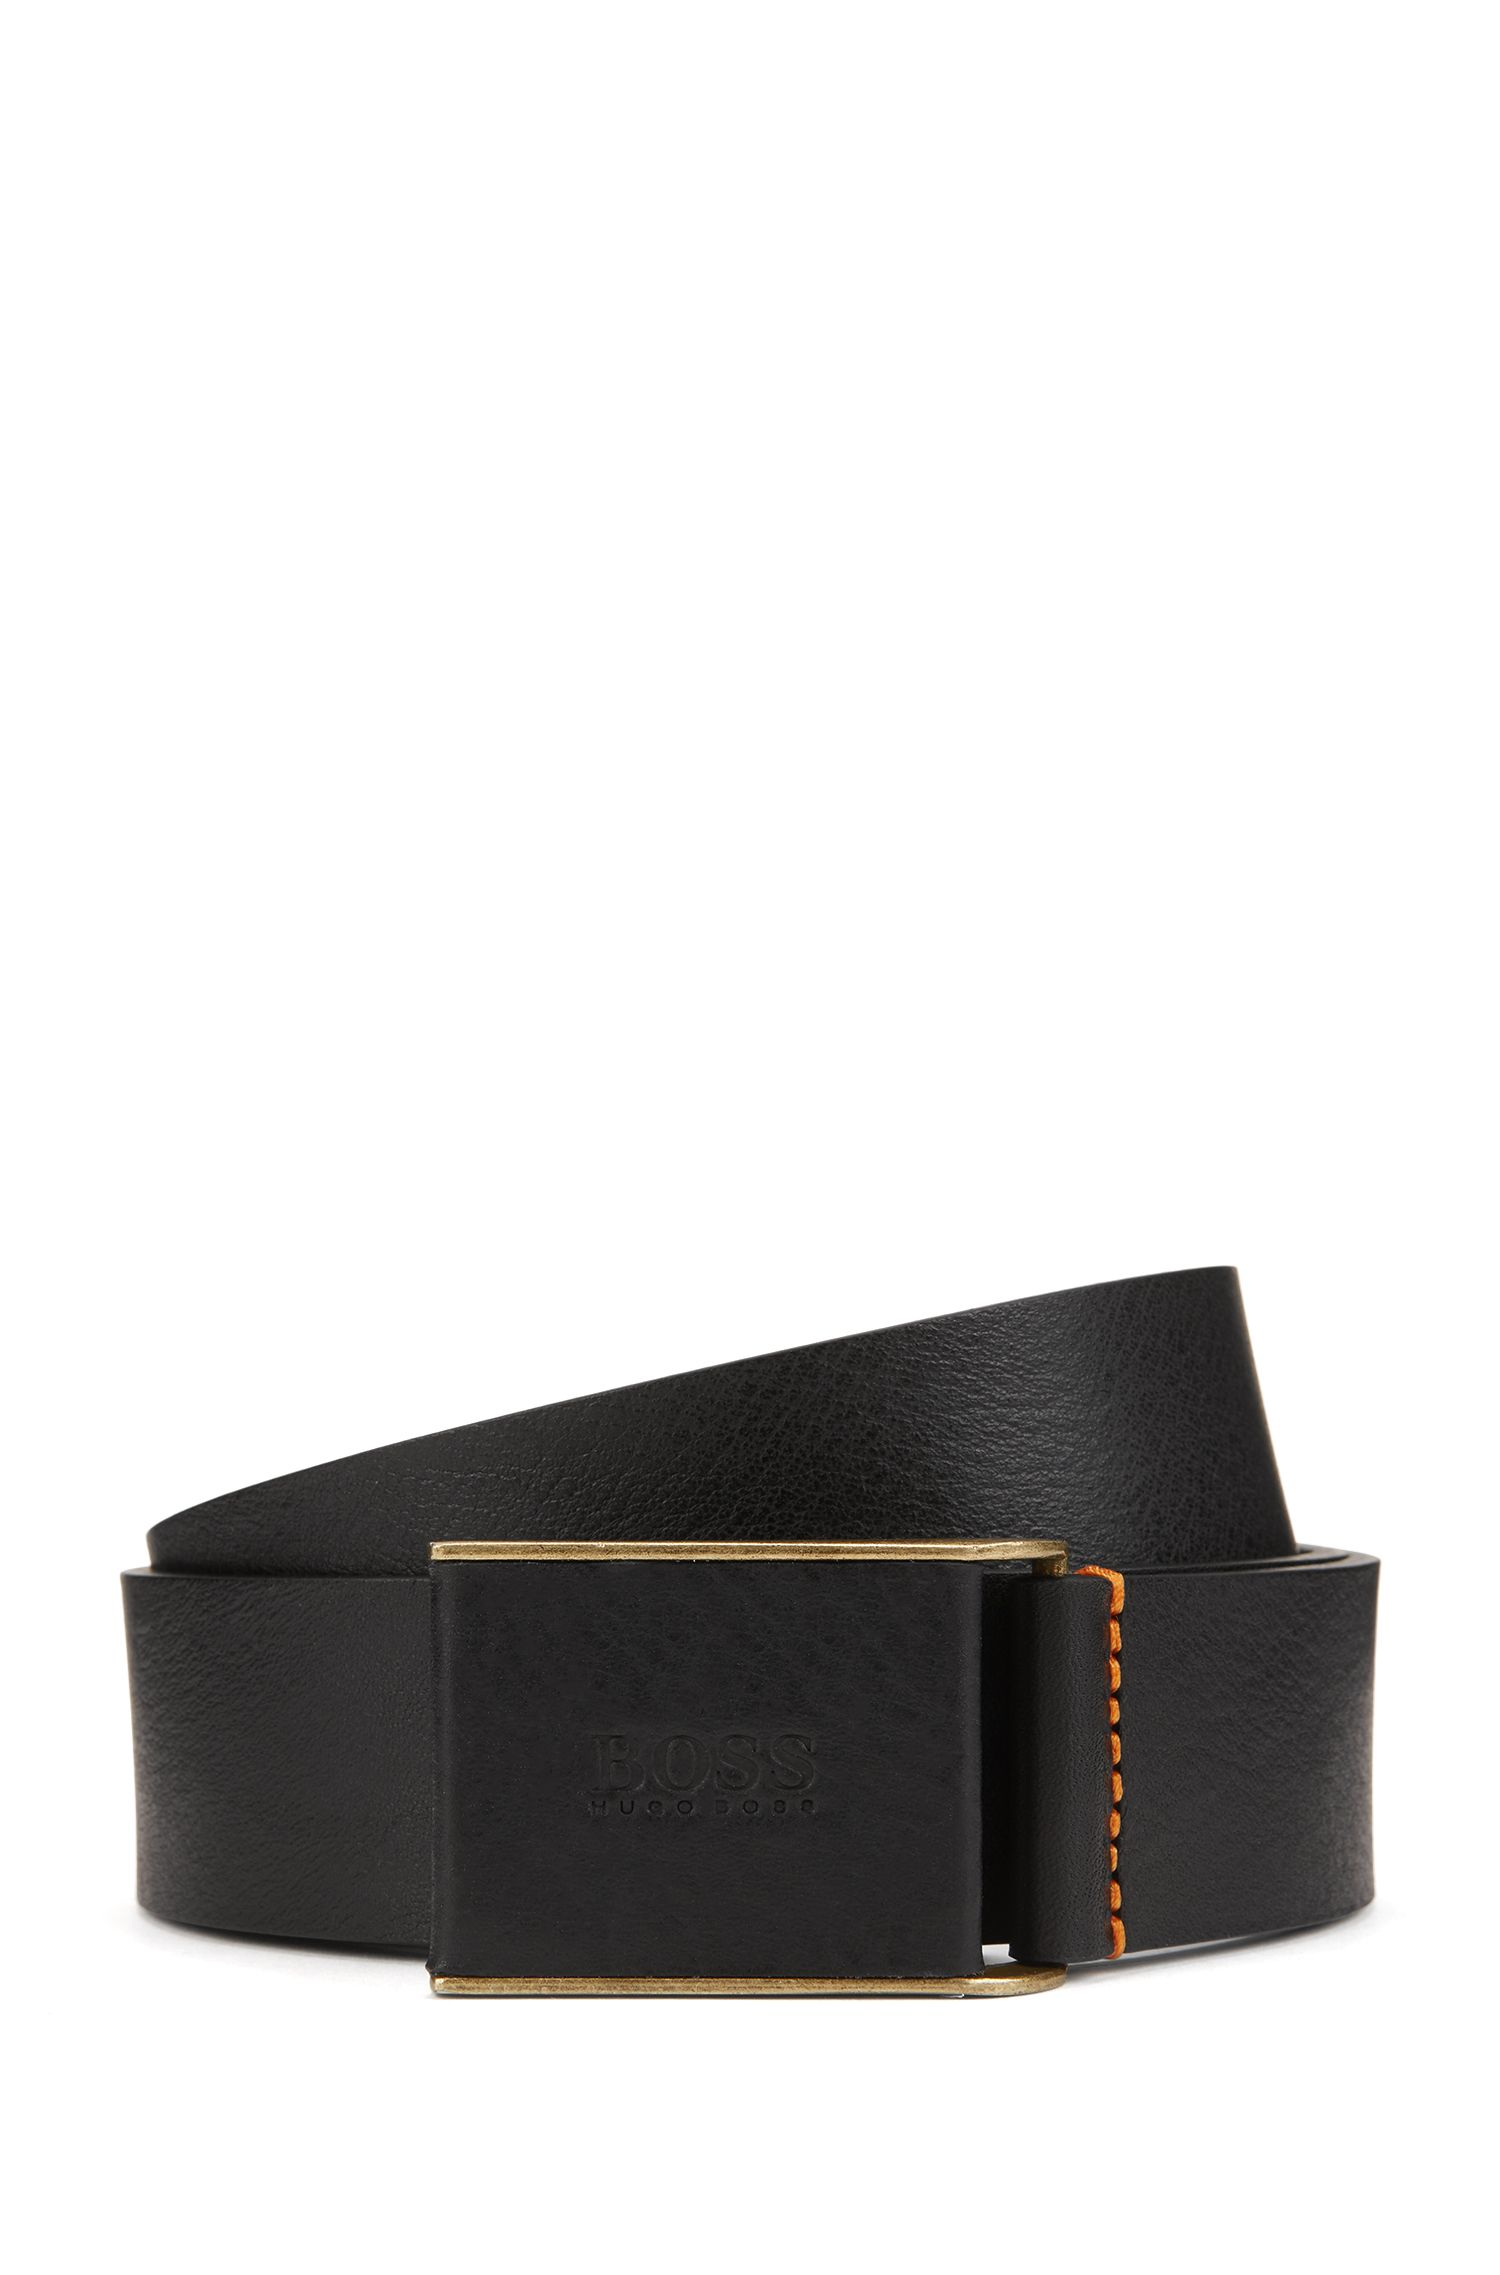 Smooth-leather belt with leather-covered plaque buckle